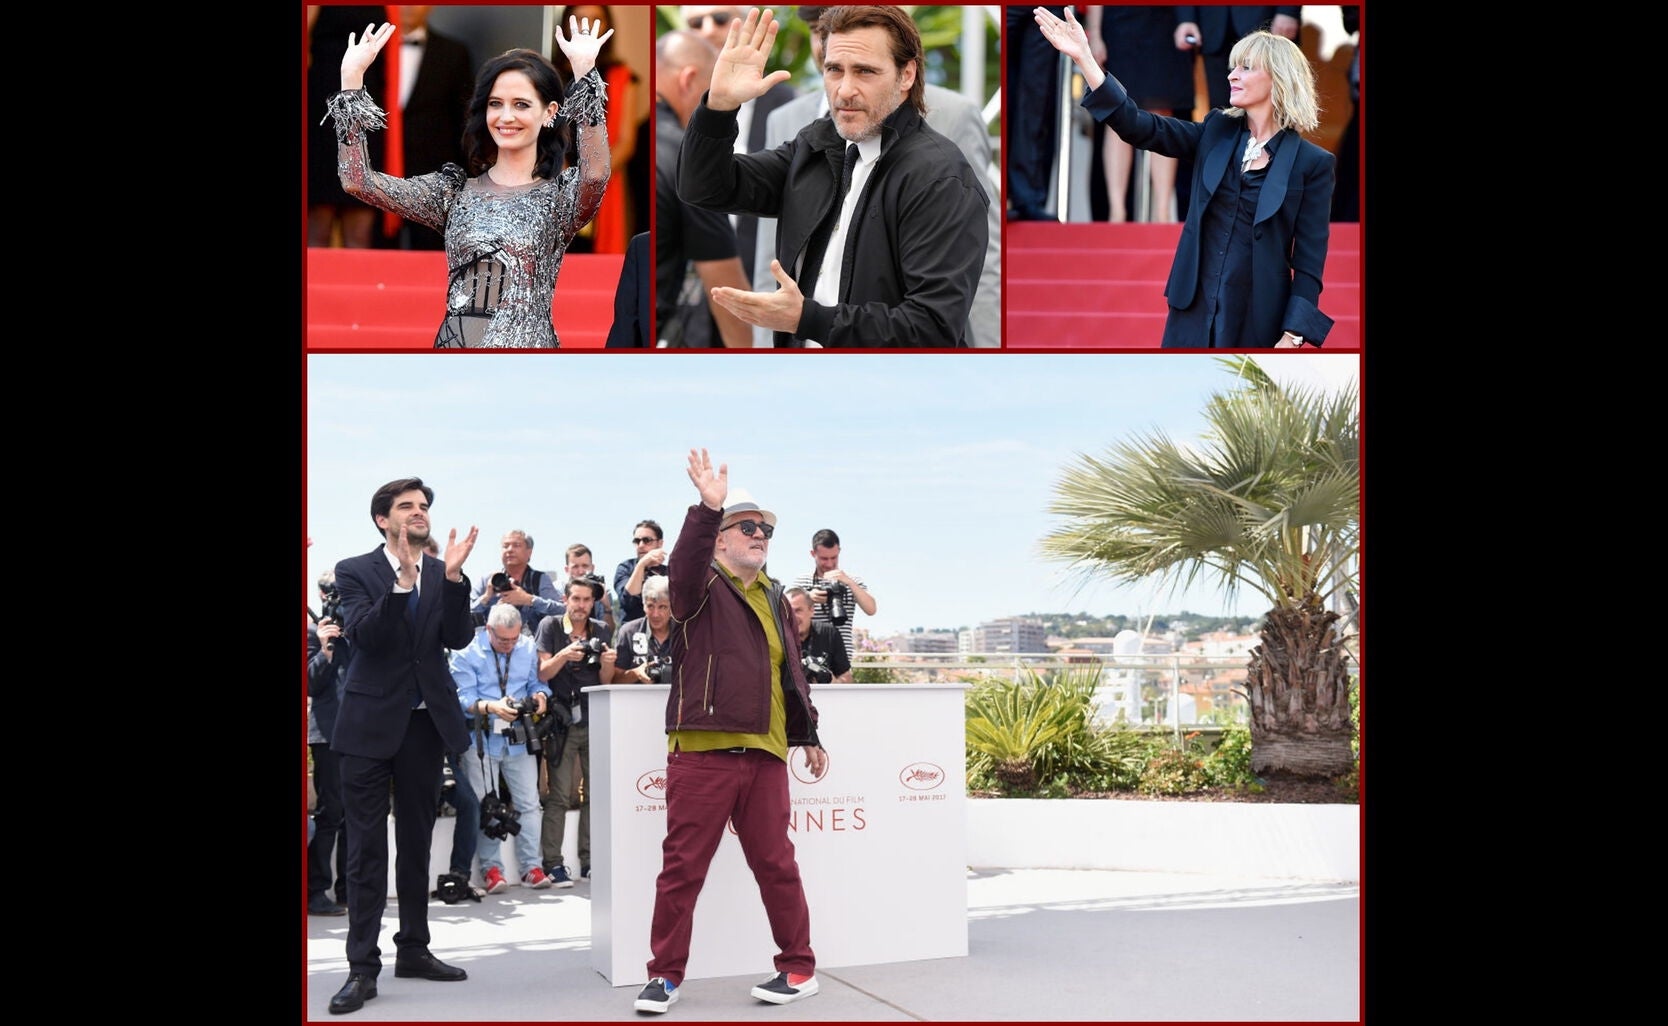 Cannes 2017 Film Festival